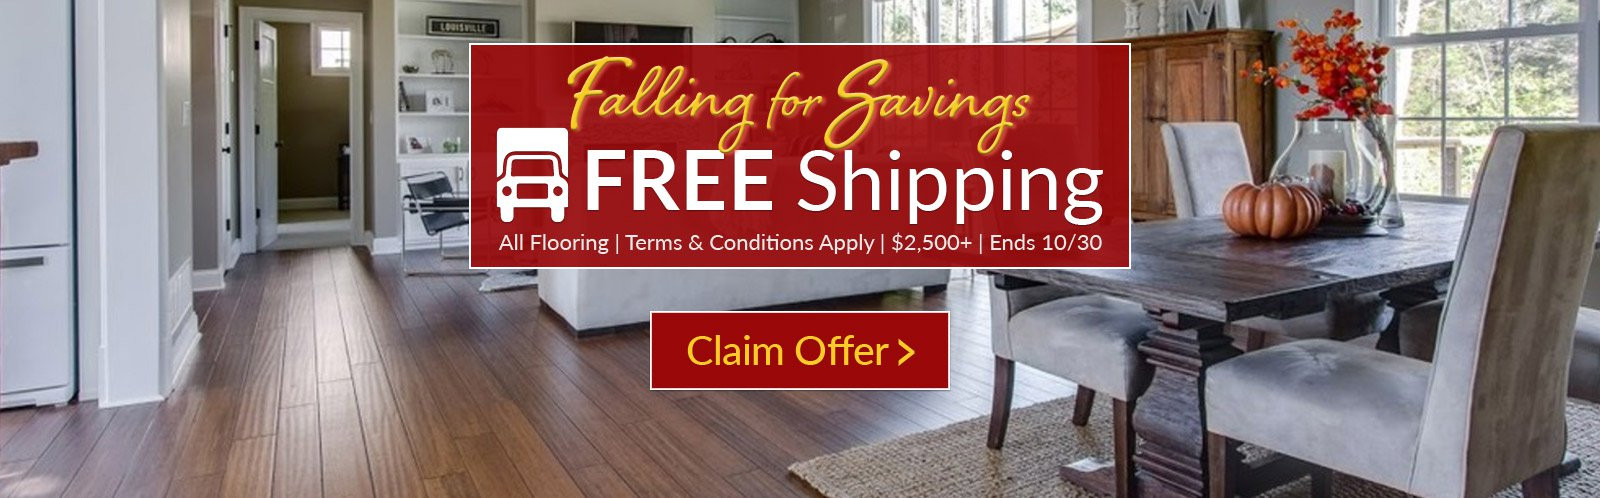 hardwood flooring suppliers denver co of green building construction materials and home decor cali bamboo within your shopping cart is empty